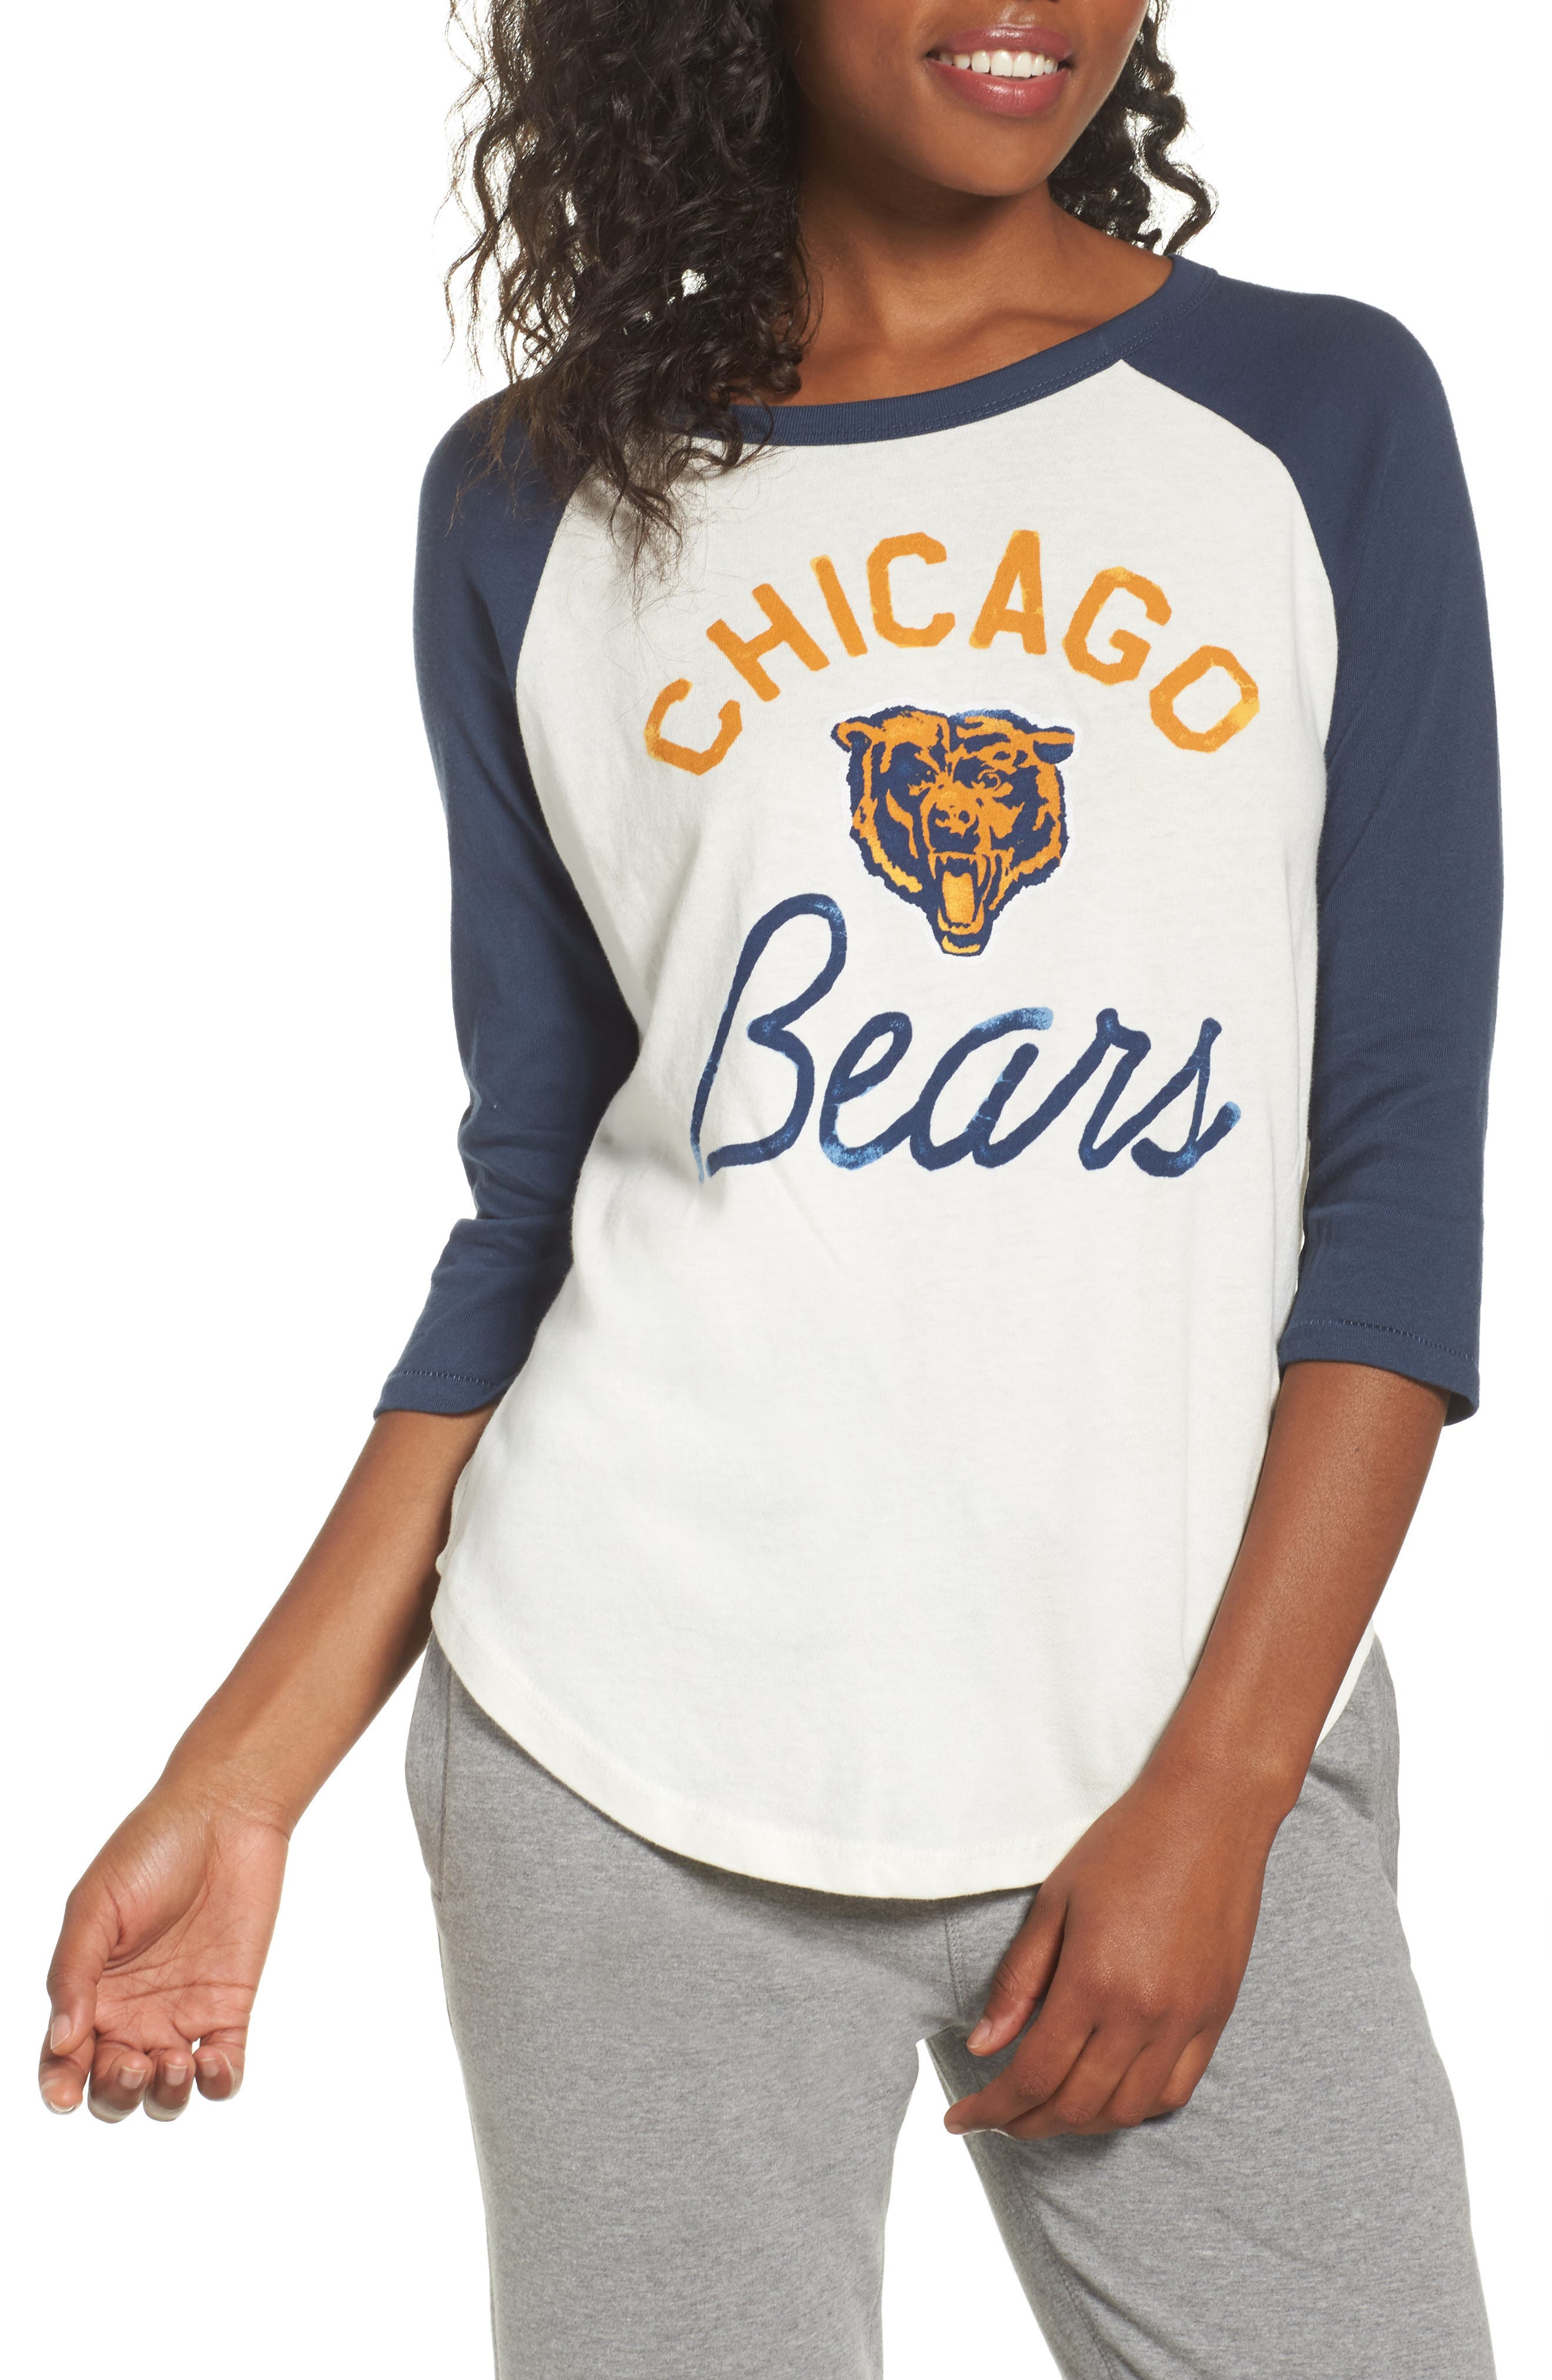 Main Image - Junk Food NFL Chicago Bears Raglan Tee